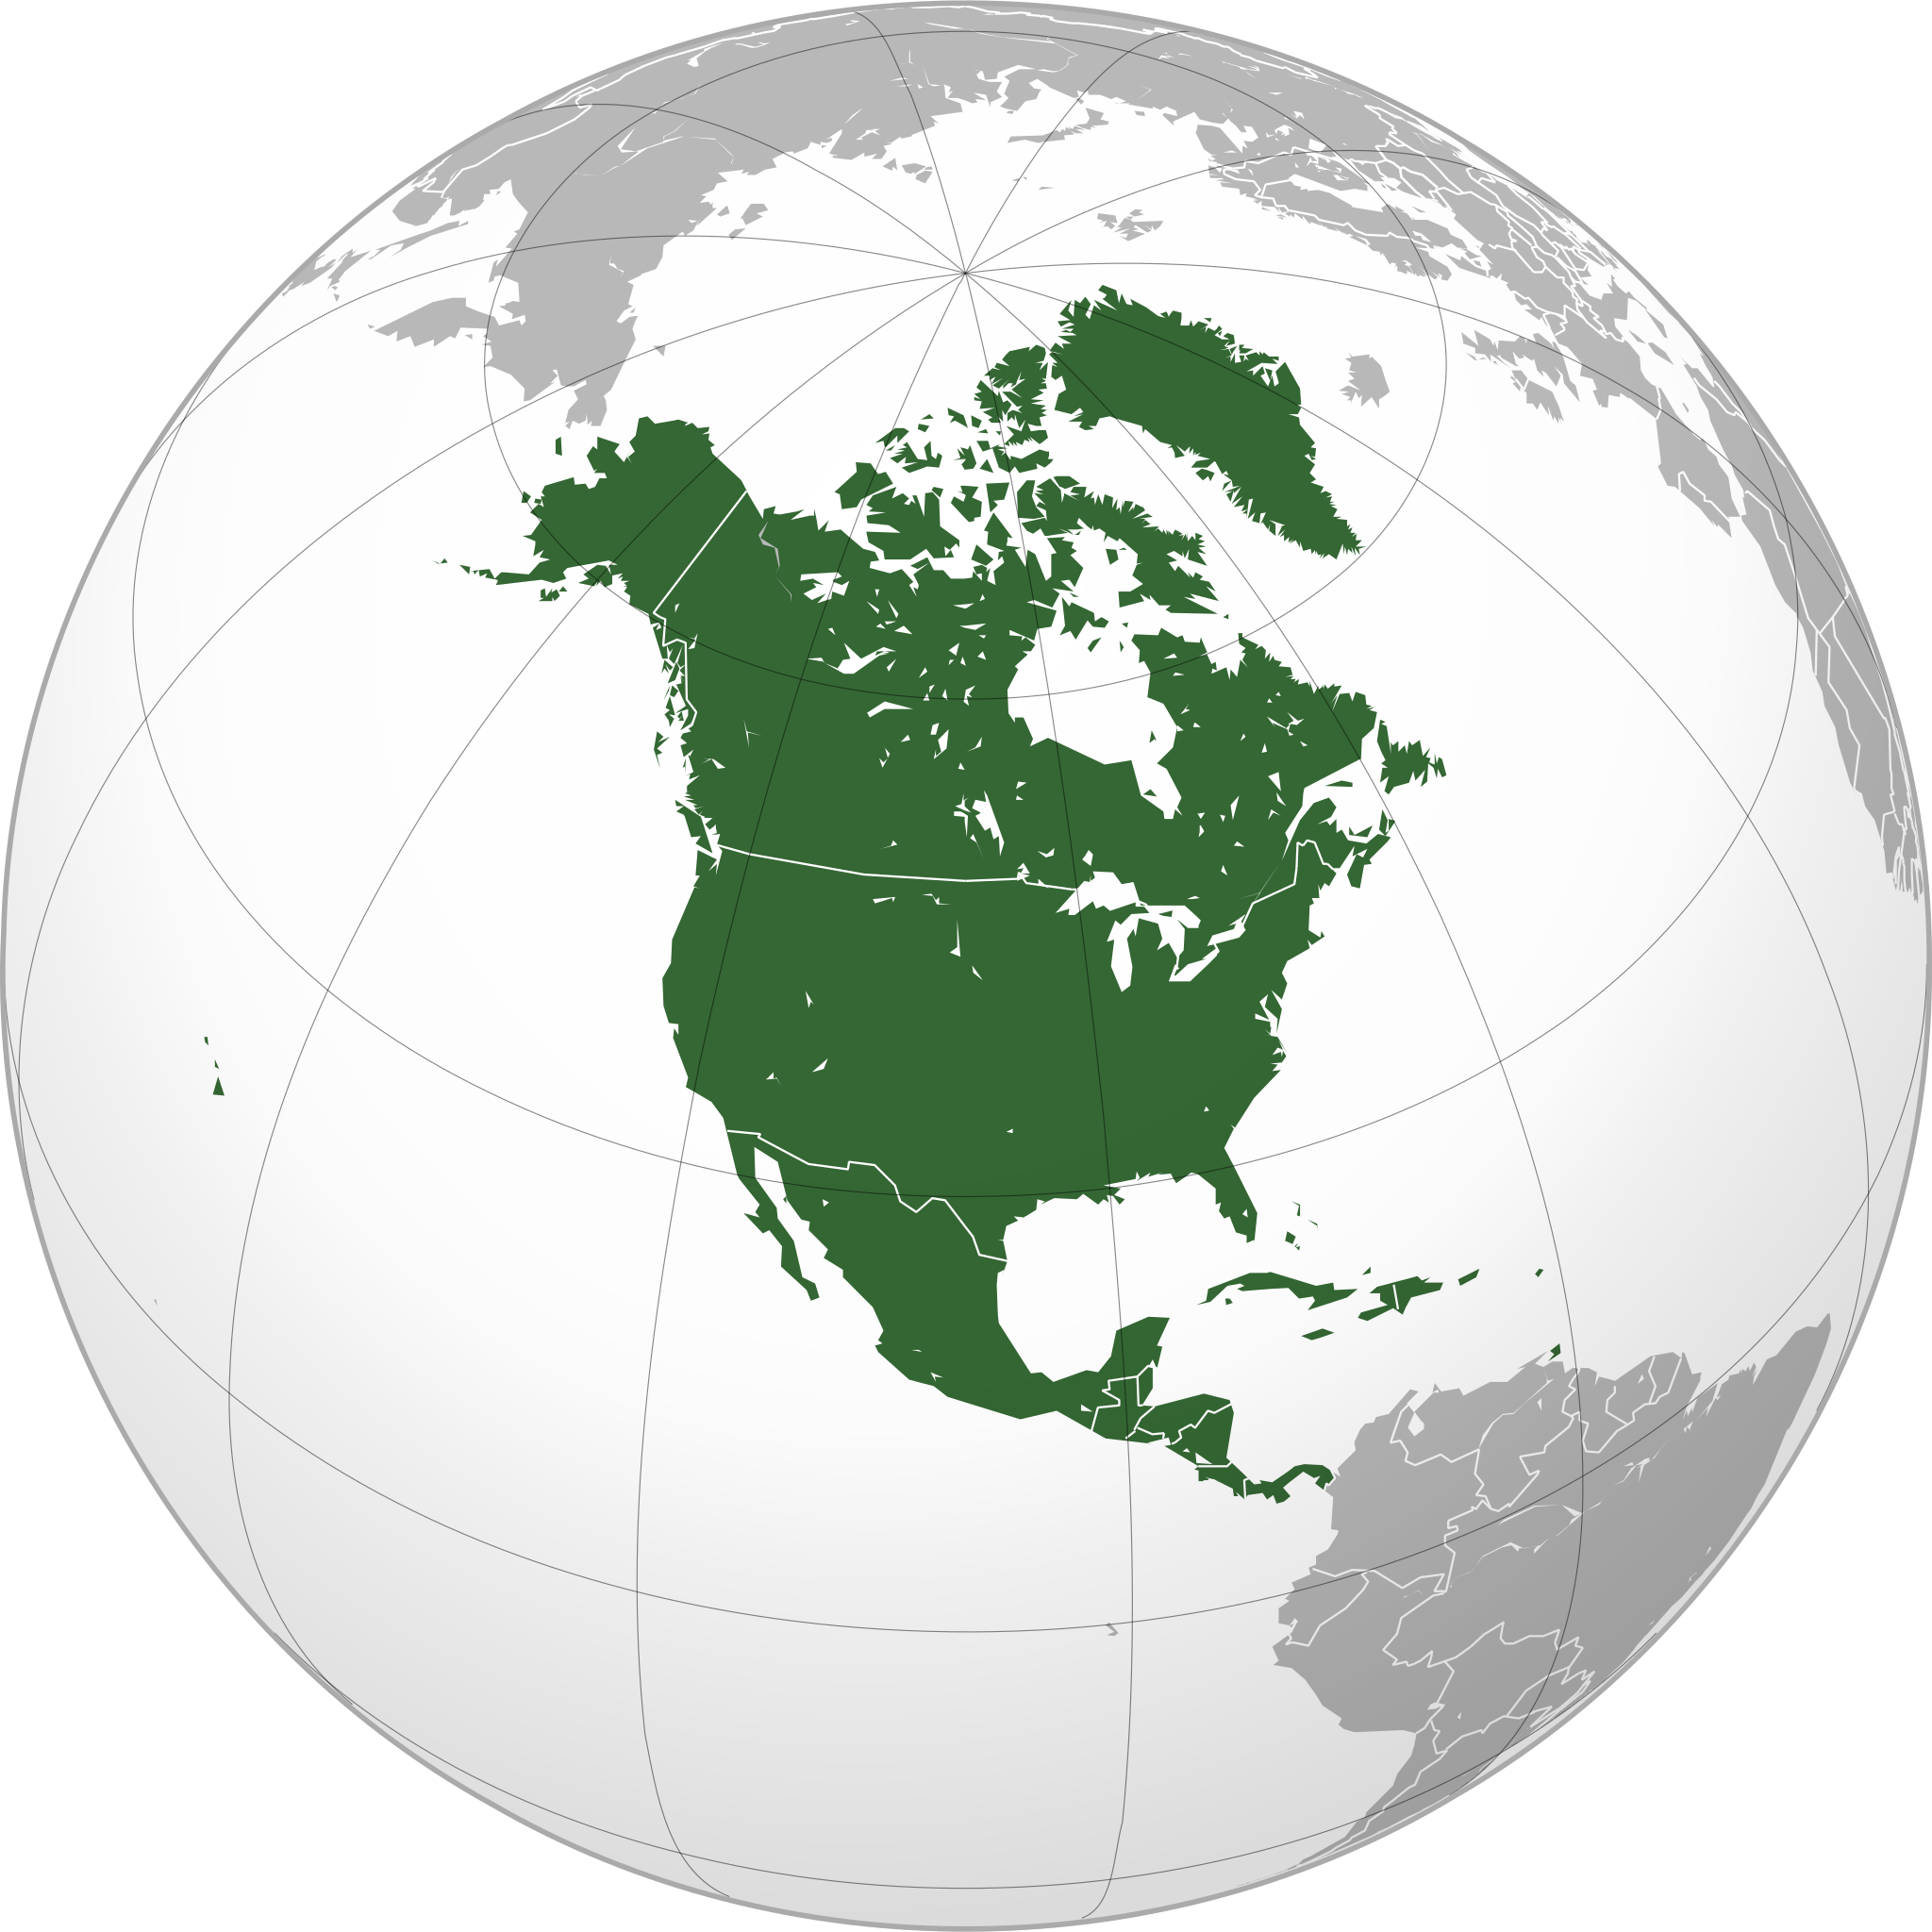 File:Map of North America.png